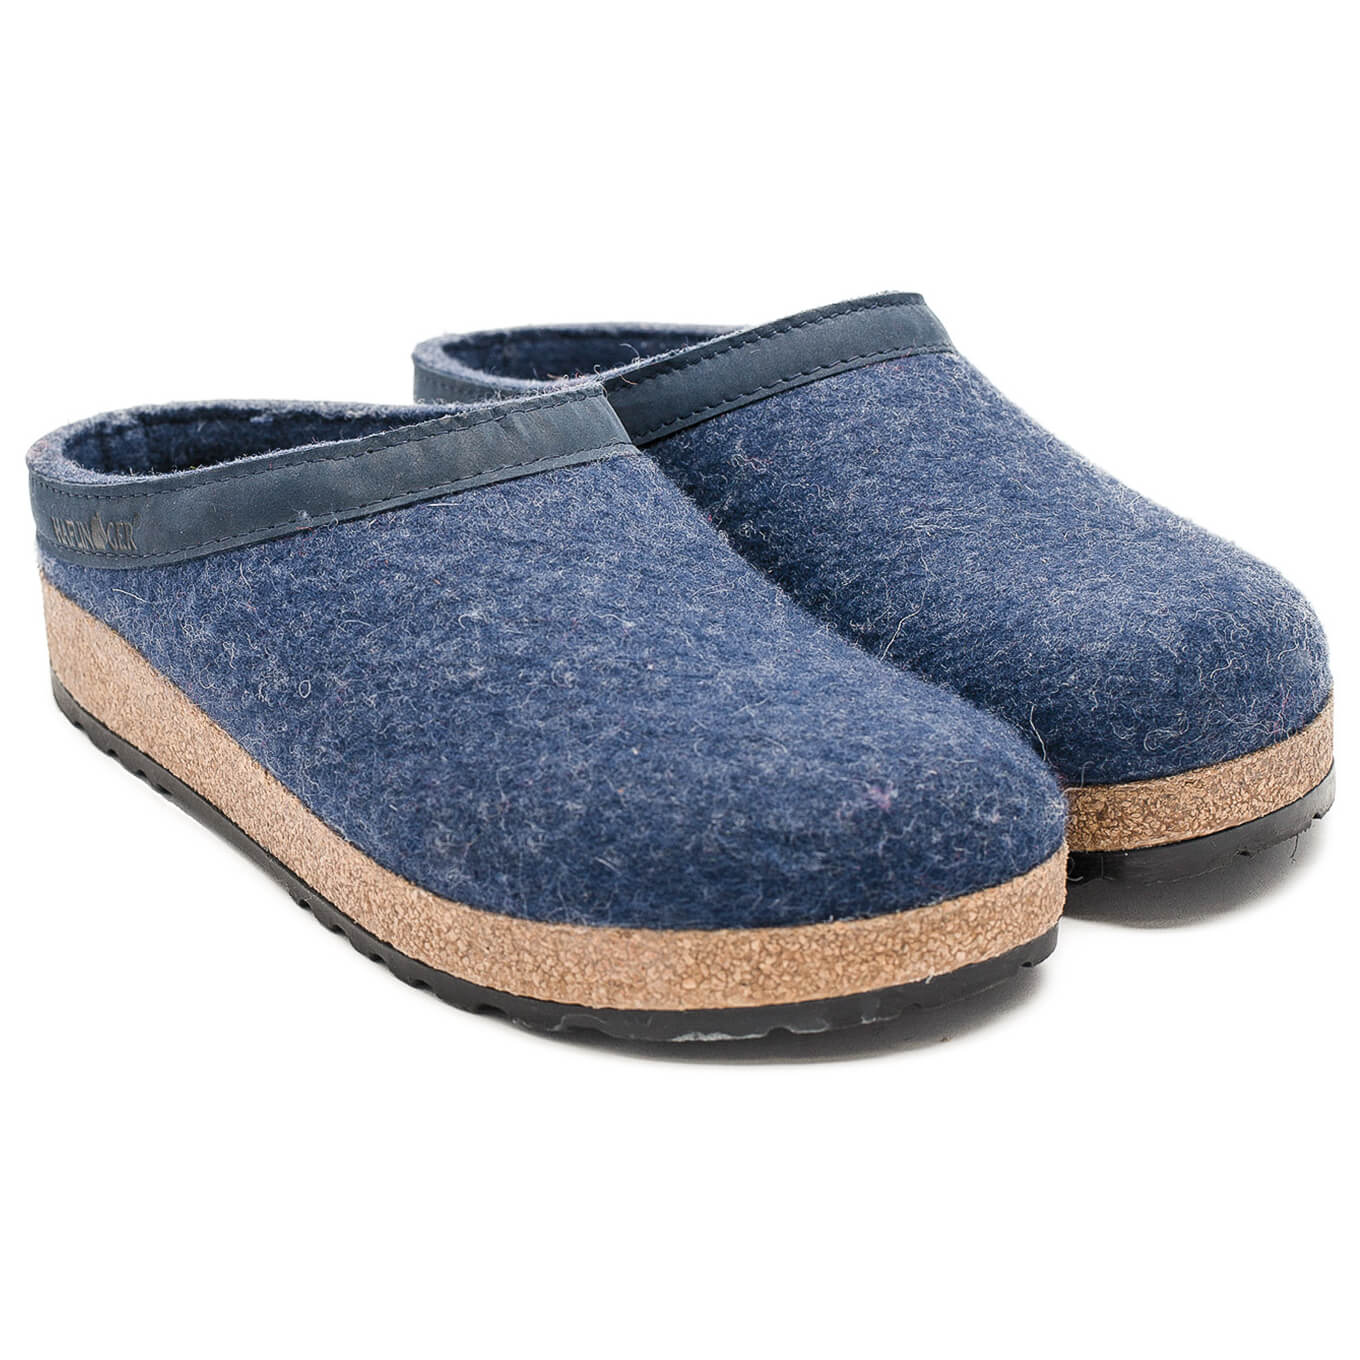 Haflinger - Grizzly Torben - Slippers | Buy online | Alpinetrek.co.uk